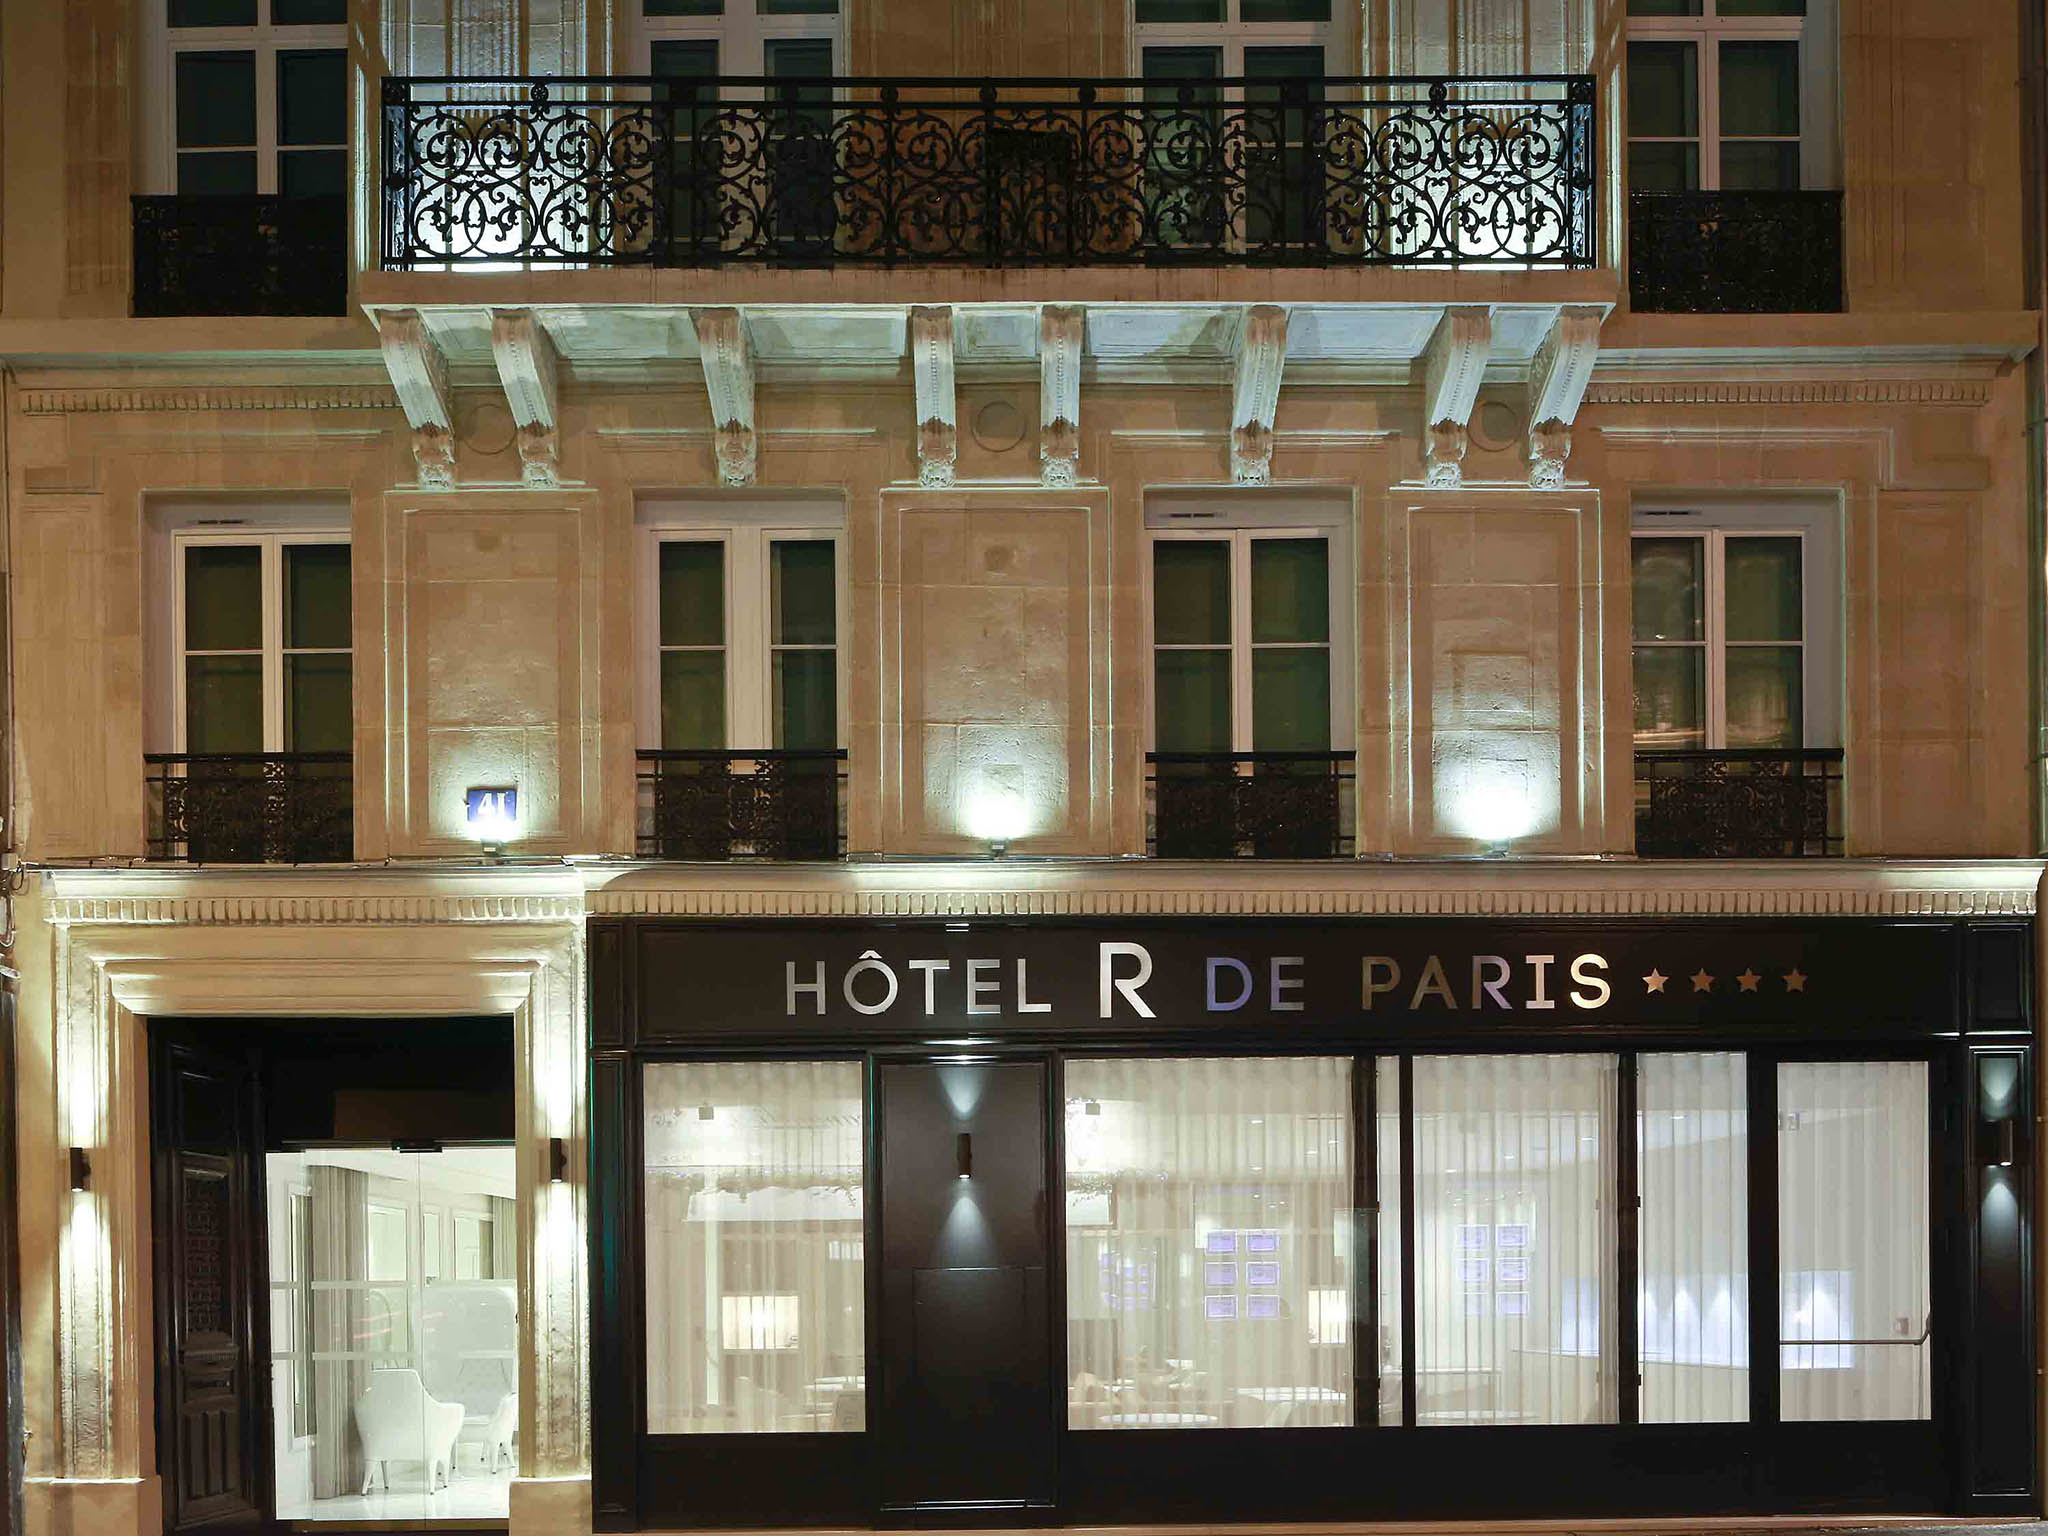 Hotel in paris hotel r de paris for Hotel paris x